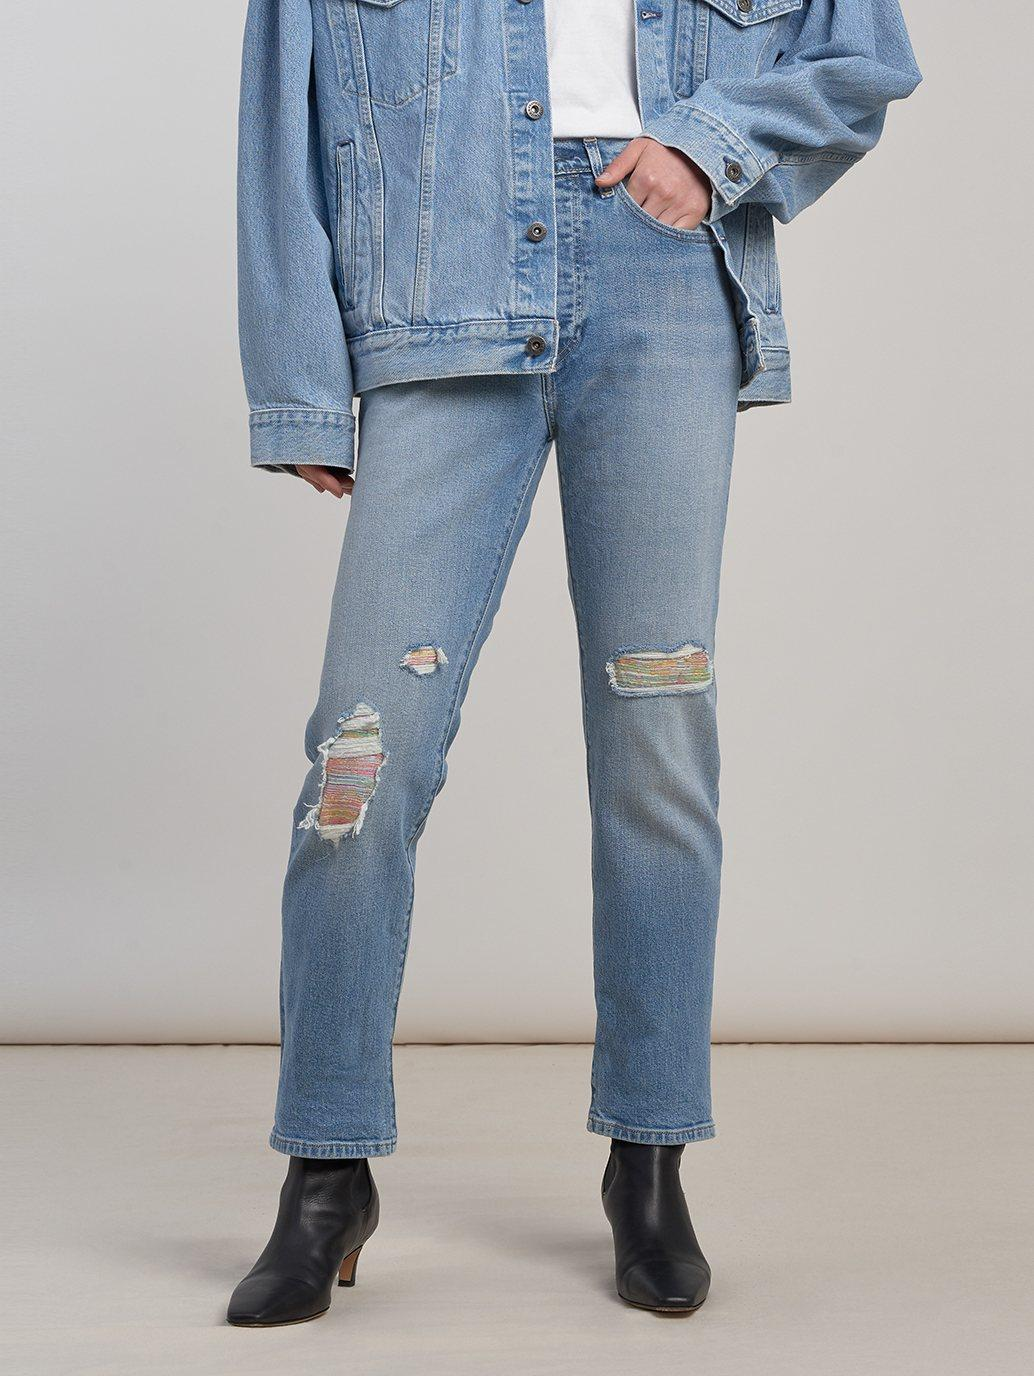 Buy Levi S Made Crafted 501 Original Fit Stretch Women S Jeans Medium Wash Levi S Hk Sar Offi The 501 original fit marlon jeans from levi's come in marlon, featuring a button fly and classic five pocket style. levi s